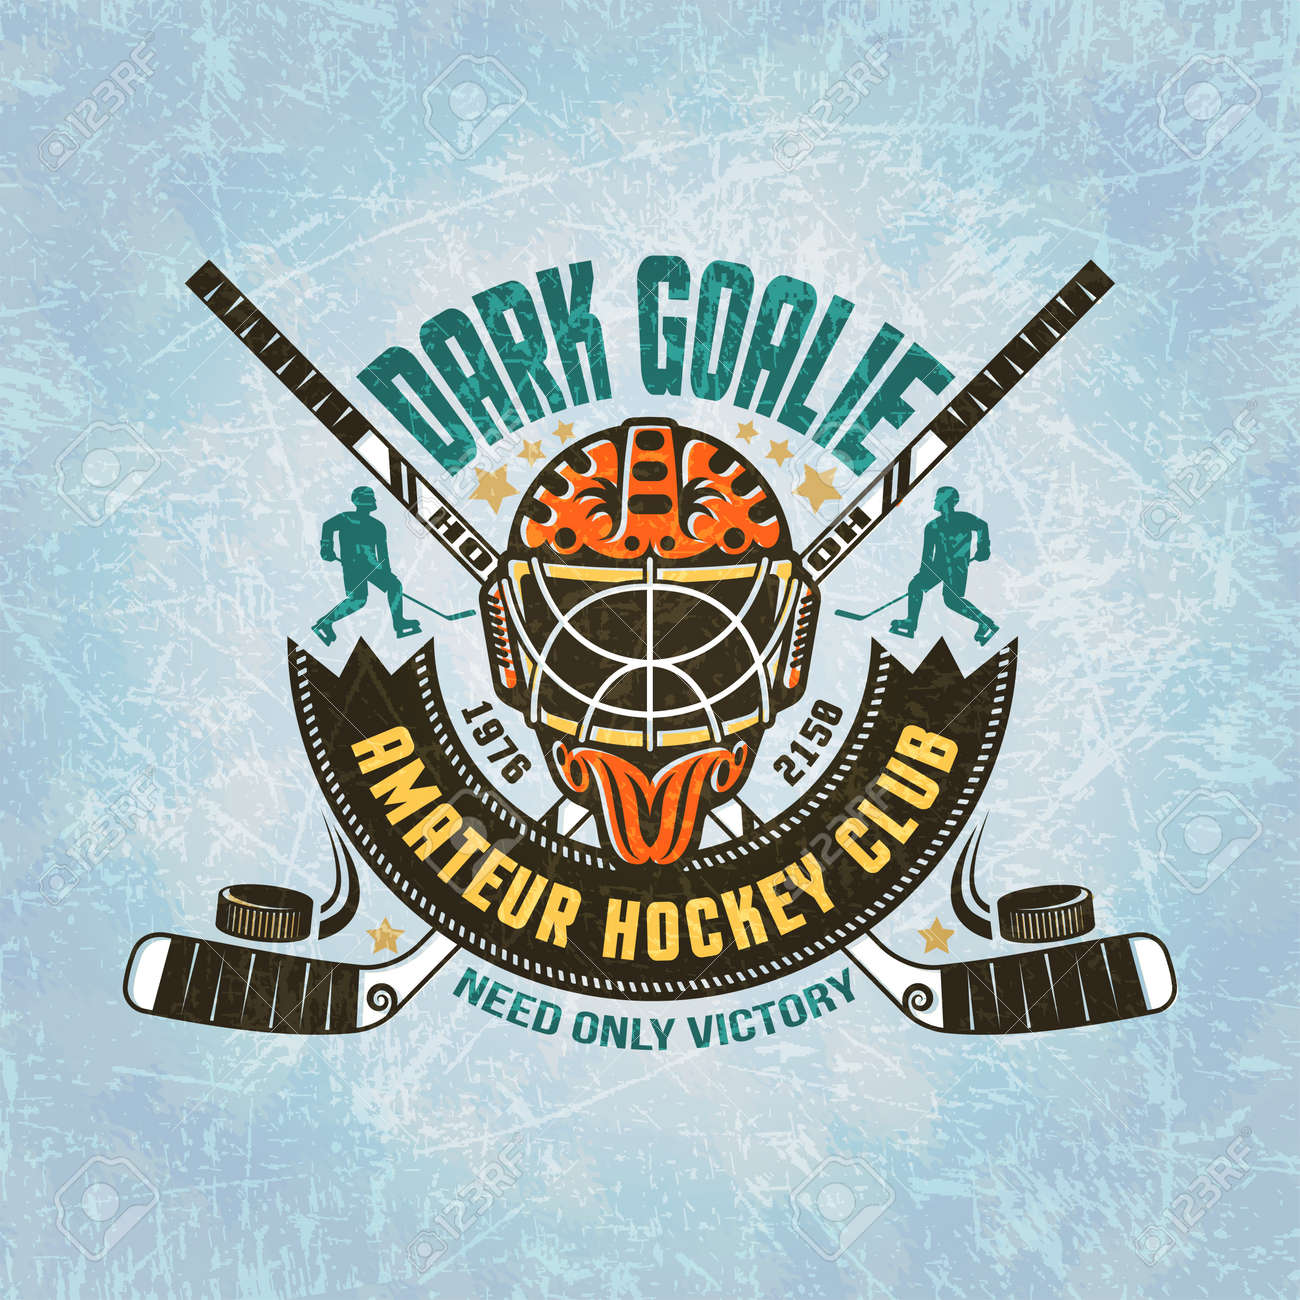 Emblem of hockey team - goalie mask, crossed hockey sticks, puck, hockey player silhouettes, vintage banner. Texture of ice on separate layers and easily disabled.Text can be removed. Stock Vector - 55677332